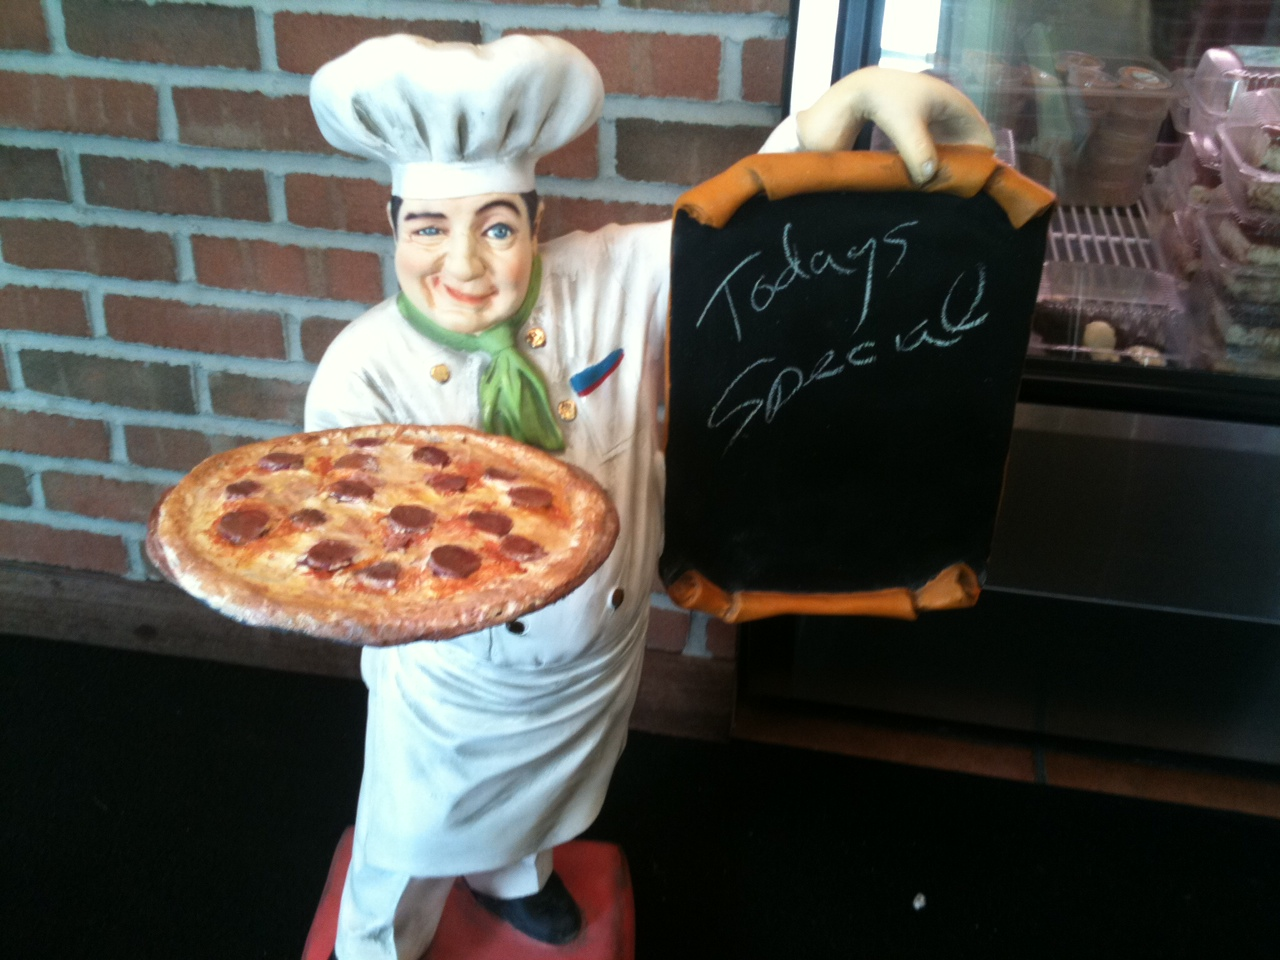 Pizza Chef Holding Pizza Pie Amp Menu Board Dmpizzapie